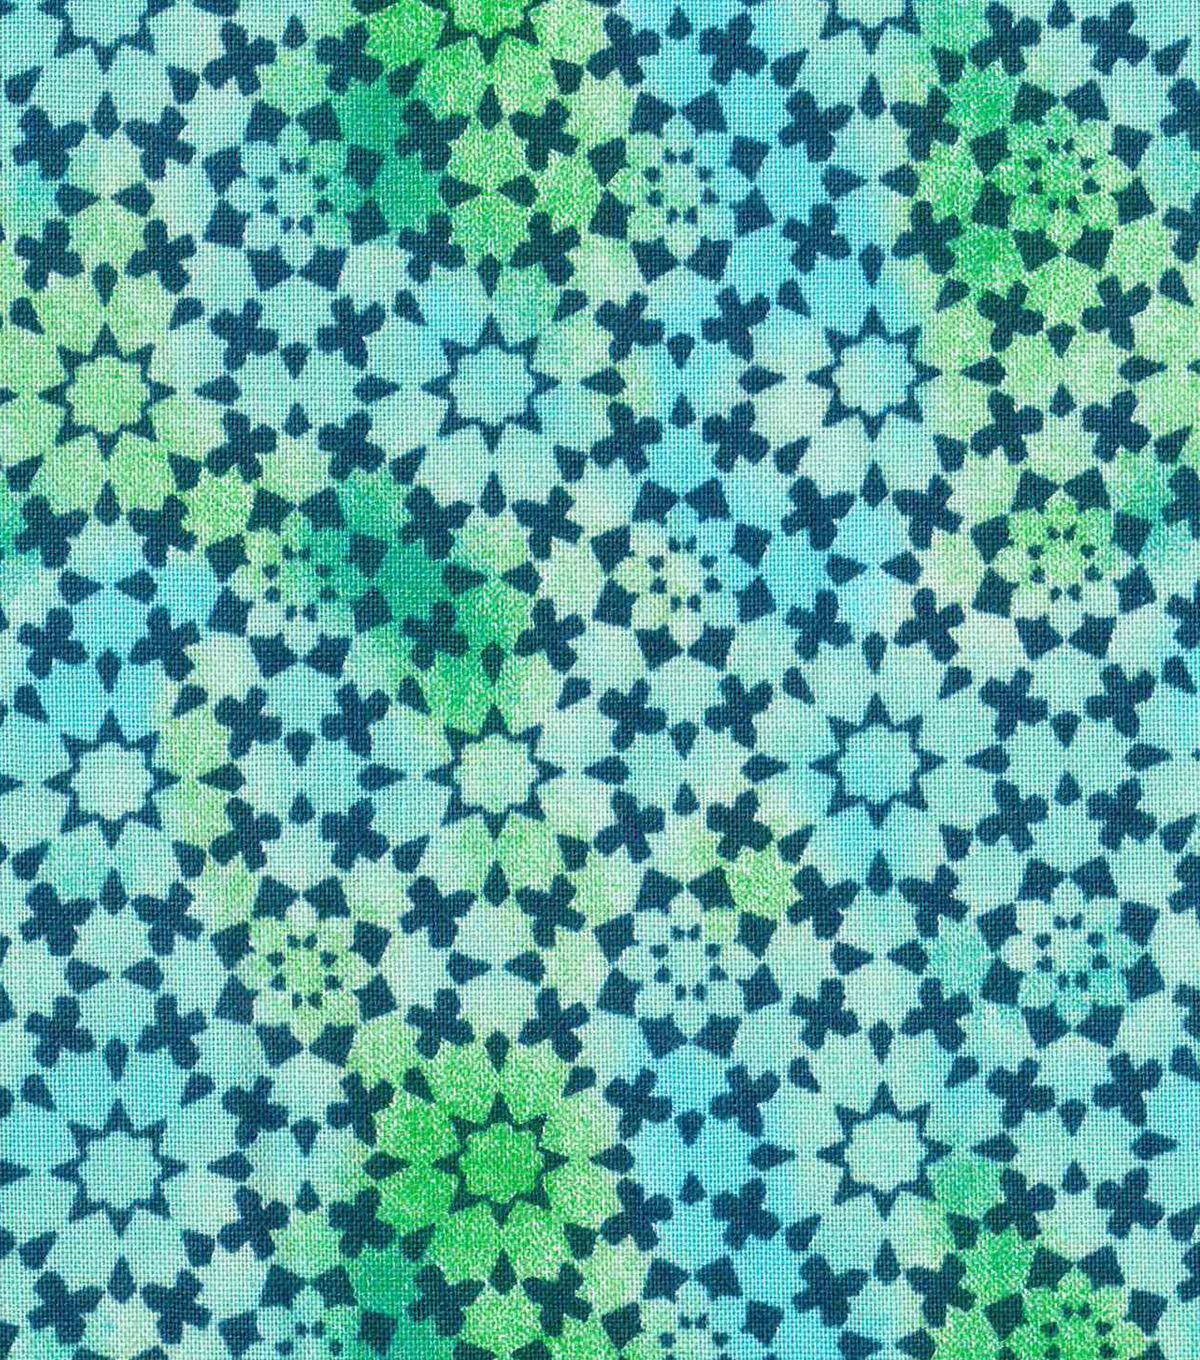 Keepsake Calico Cotton Fabric -Teal Kalediscope Blender